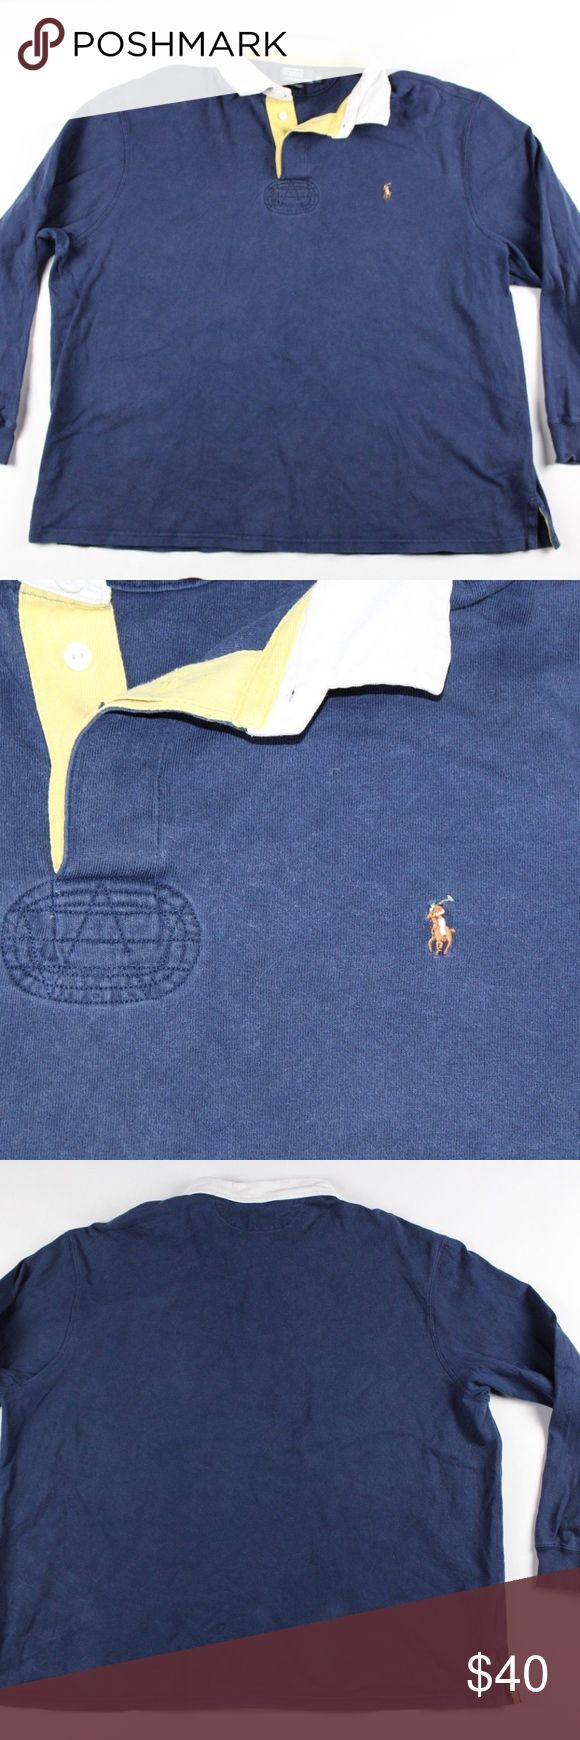 Polo Ralph Lauren 3X Big Long Sleeve Rugby Shirt Polo by Ralph Lauren Rugby Shirt  Excellent shirt for a day out  Comes from a smoke-free household  The size is 3XB and the measurements are 28 inches underarm to underarm and 29 inches shoulder to base  Blue with a Multi-color Pony logo  Cotton  Check out my other items for sale!  L3 Polo by Ralph Lauren Shirts Polos